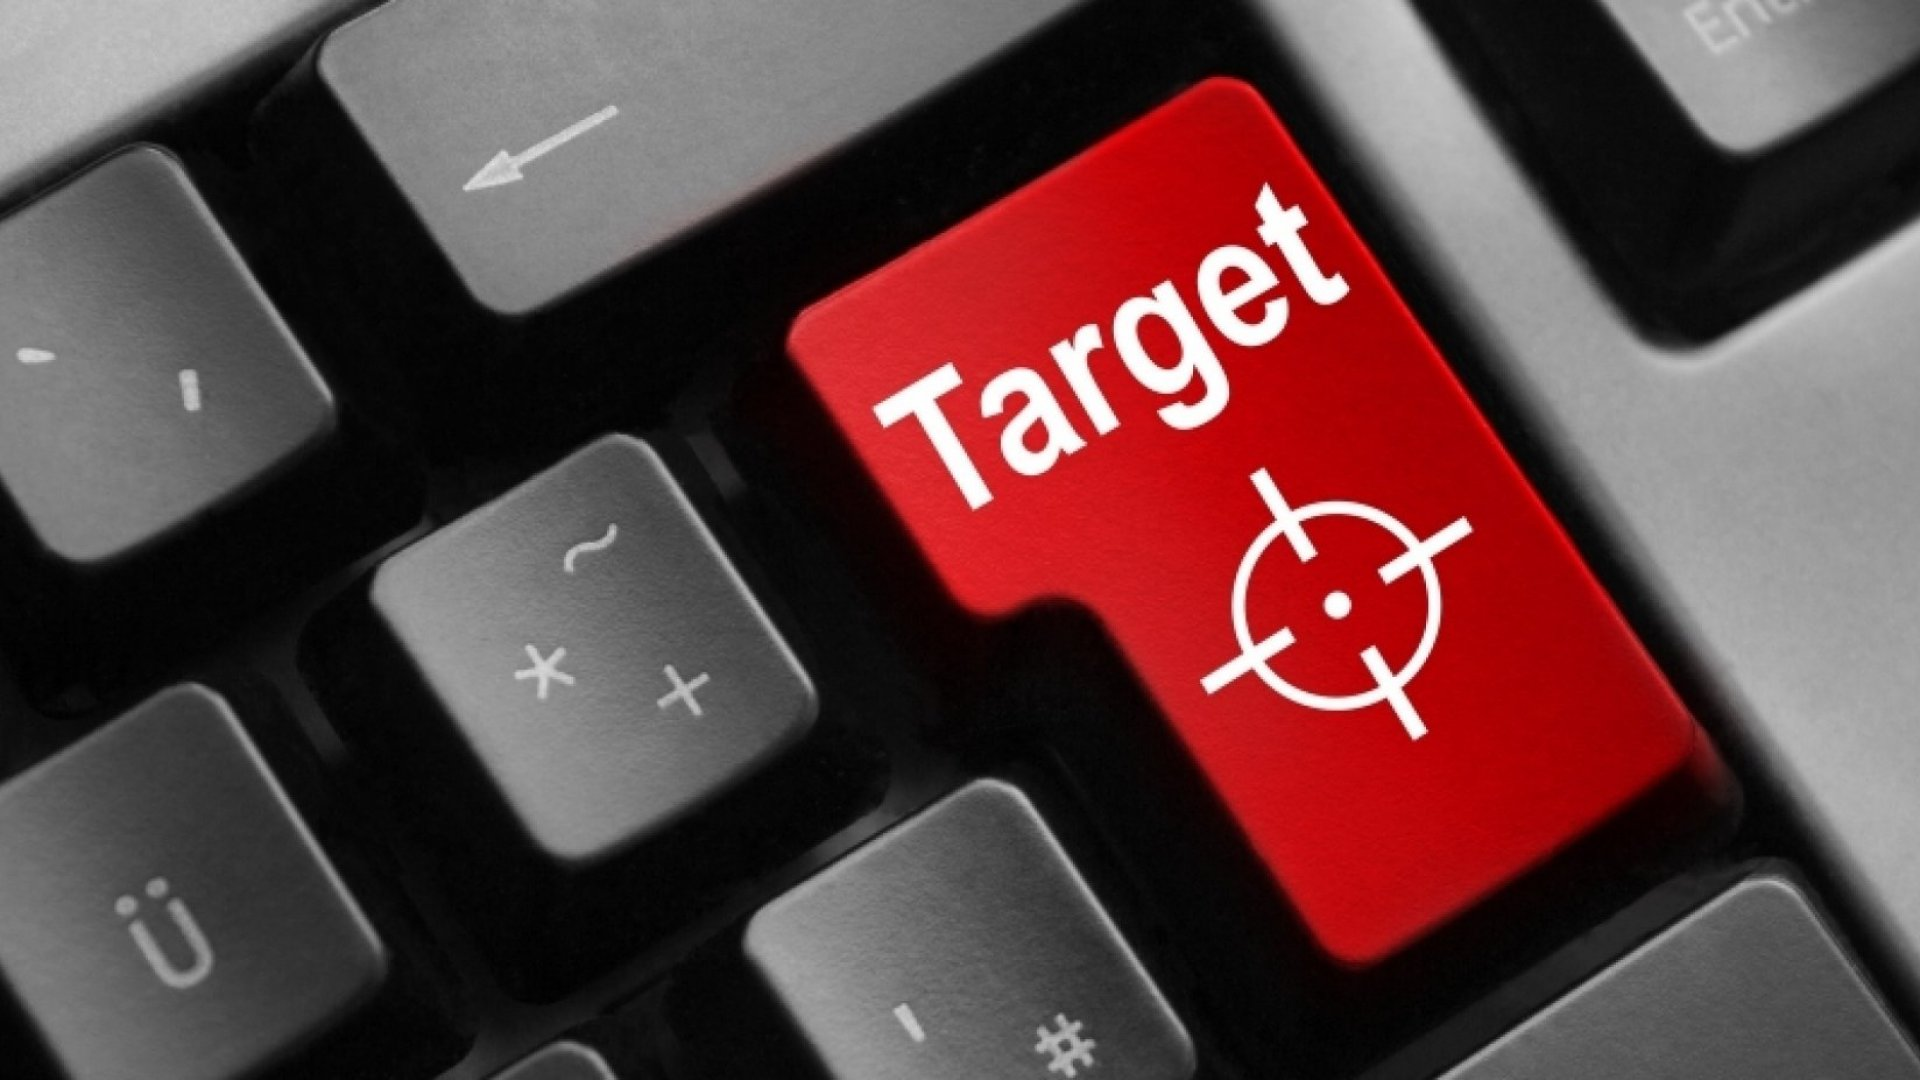 6 Things You Should Do Today to Prepare for a Cyberwar